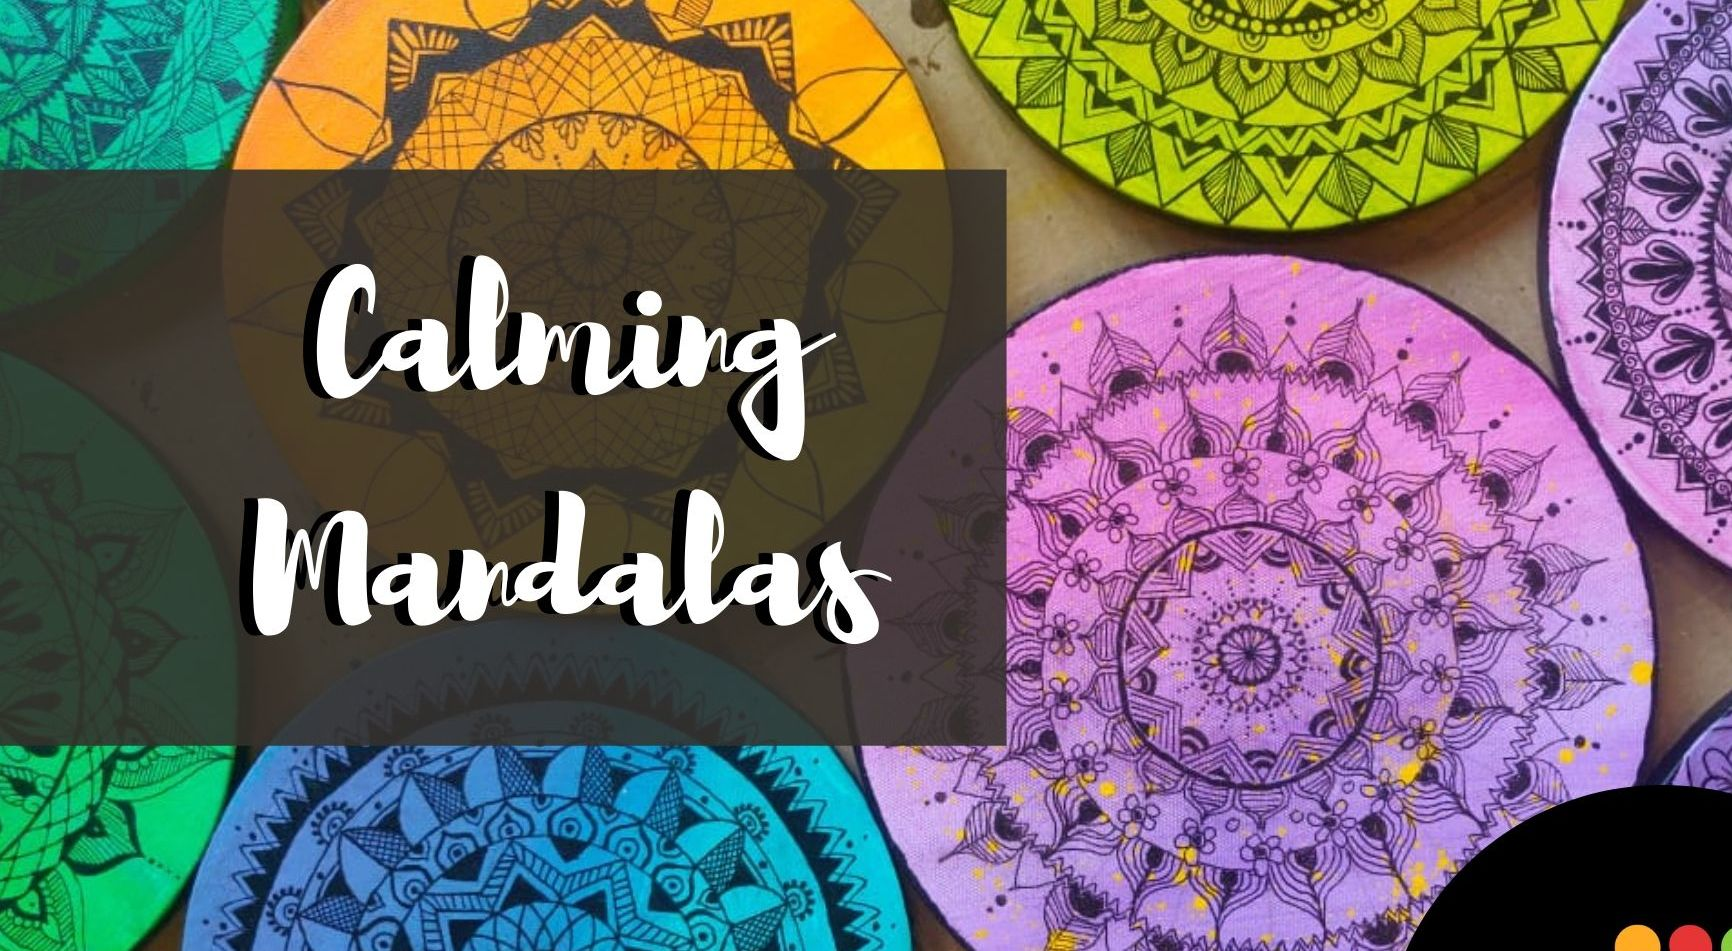 Calming Mandalas - Mandala Workshop